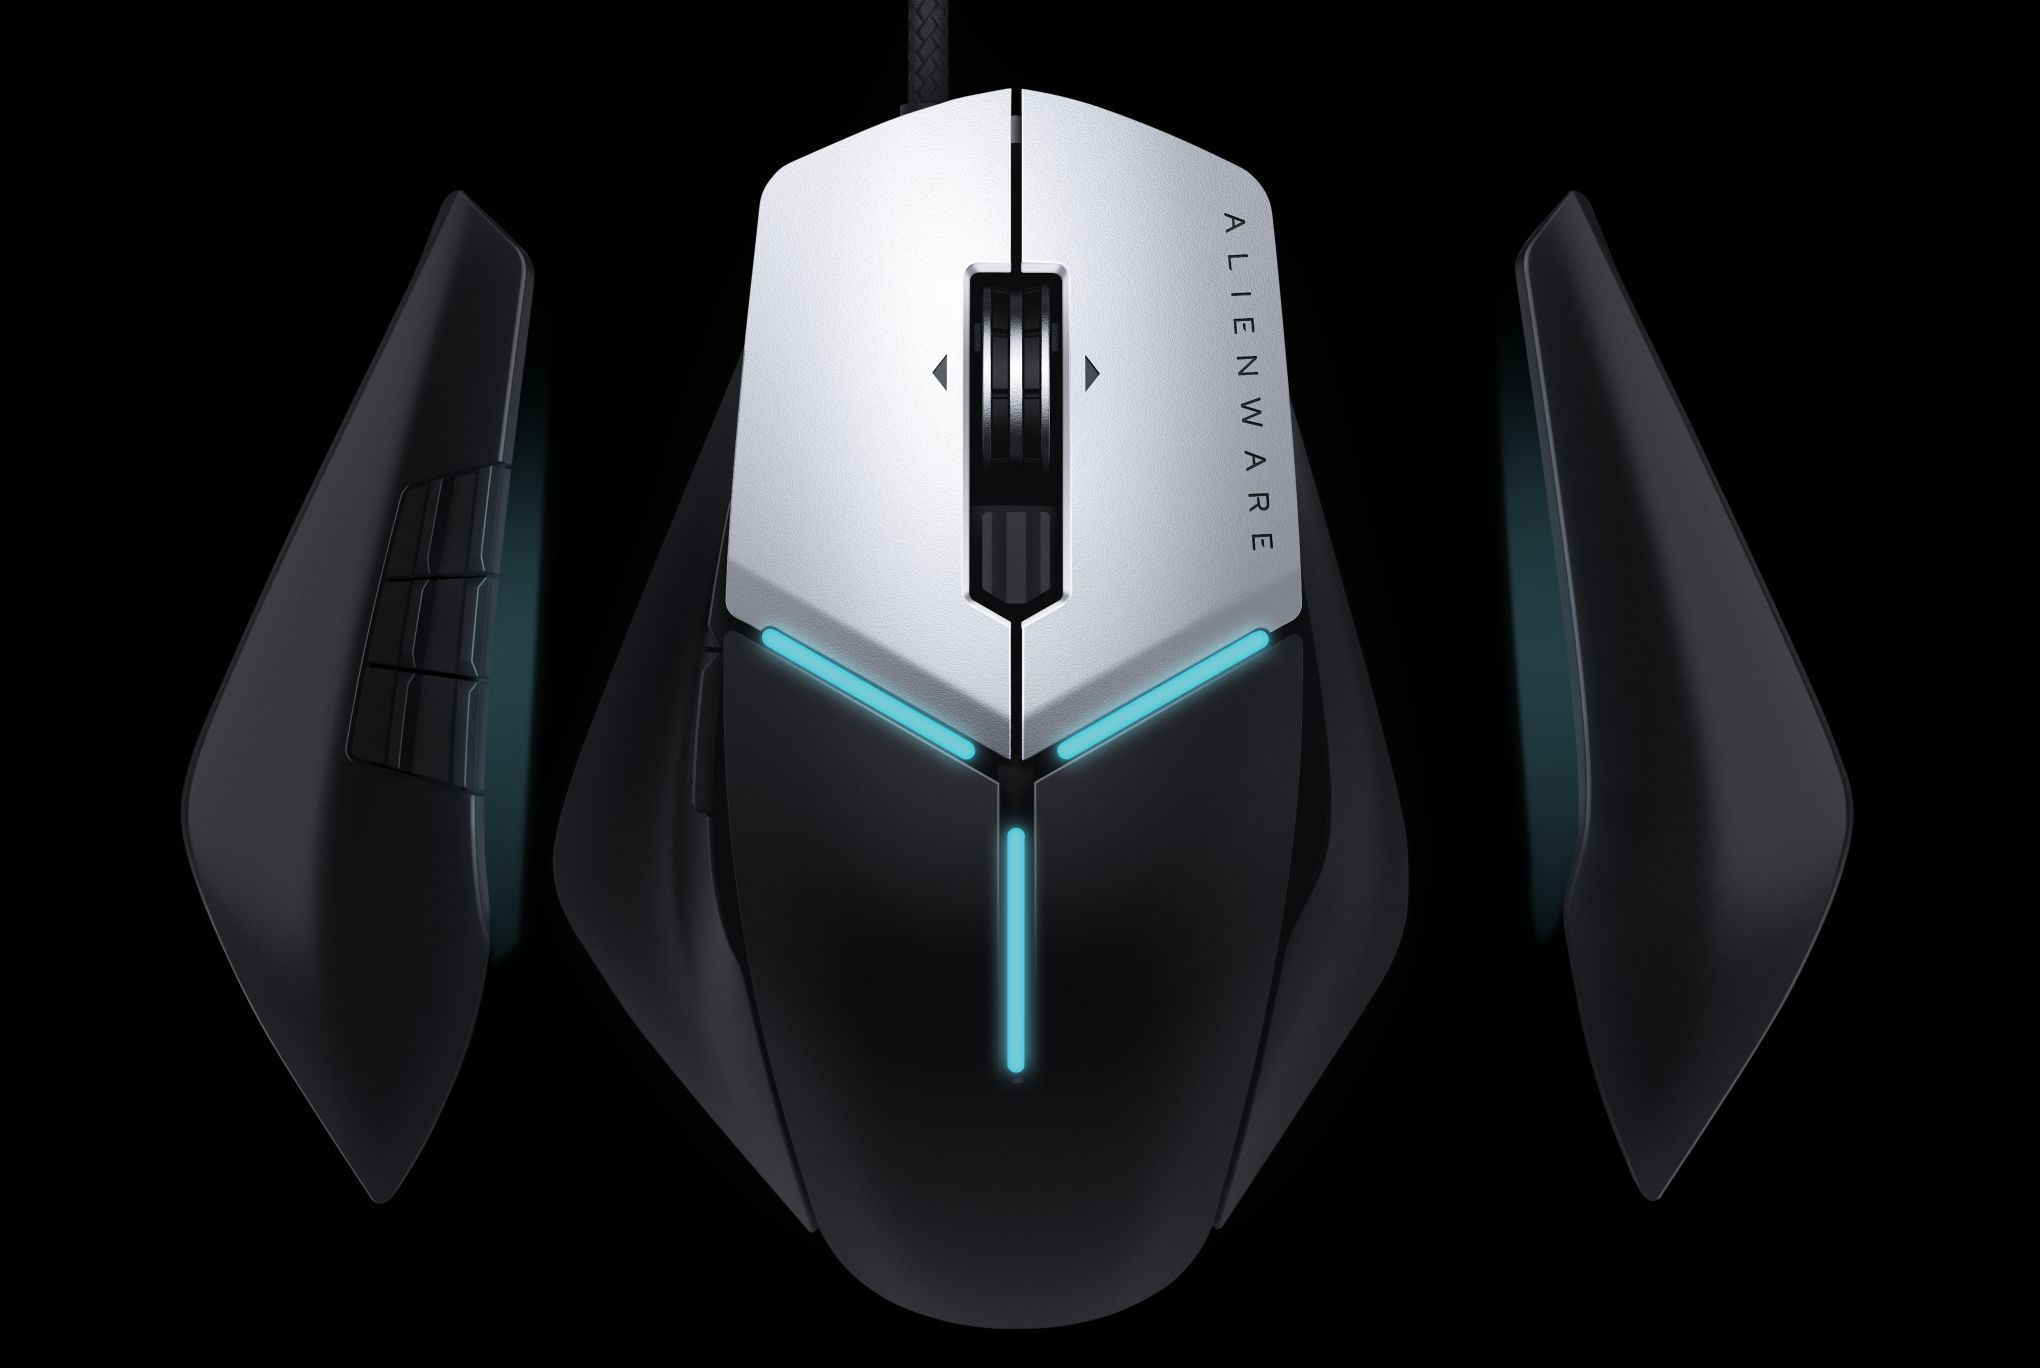 9b9bbfd765f Alienware (finally) moves into PC peripherals with its own gaming keyboards  and mice